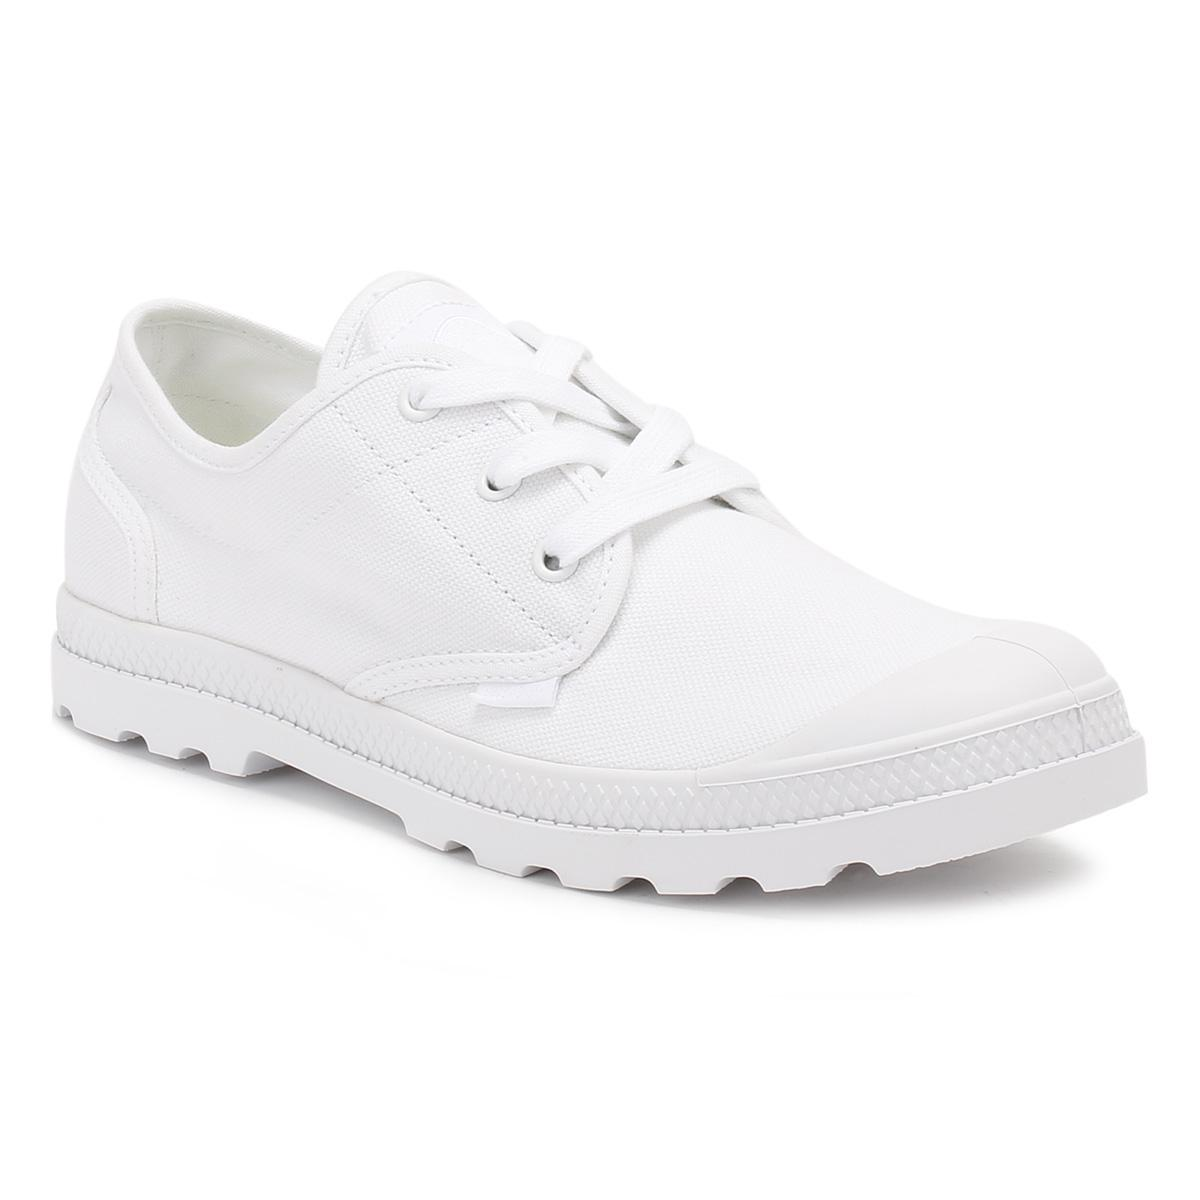 Palladium Womens Shoes Canada